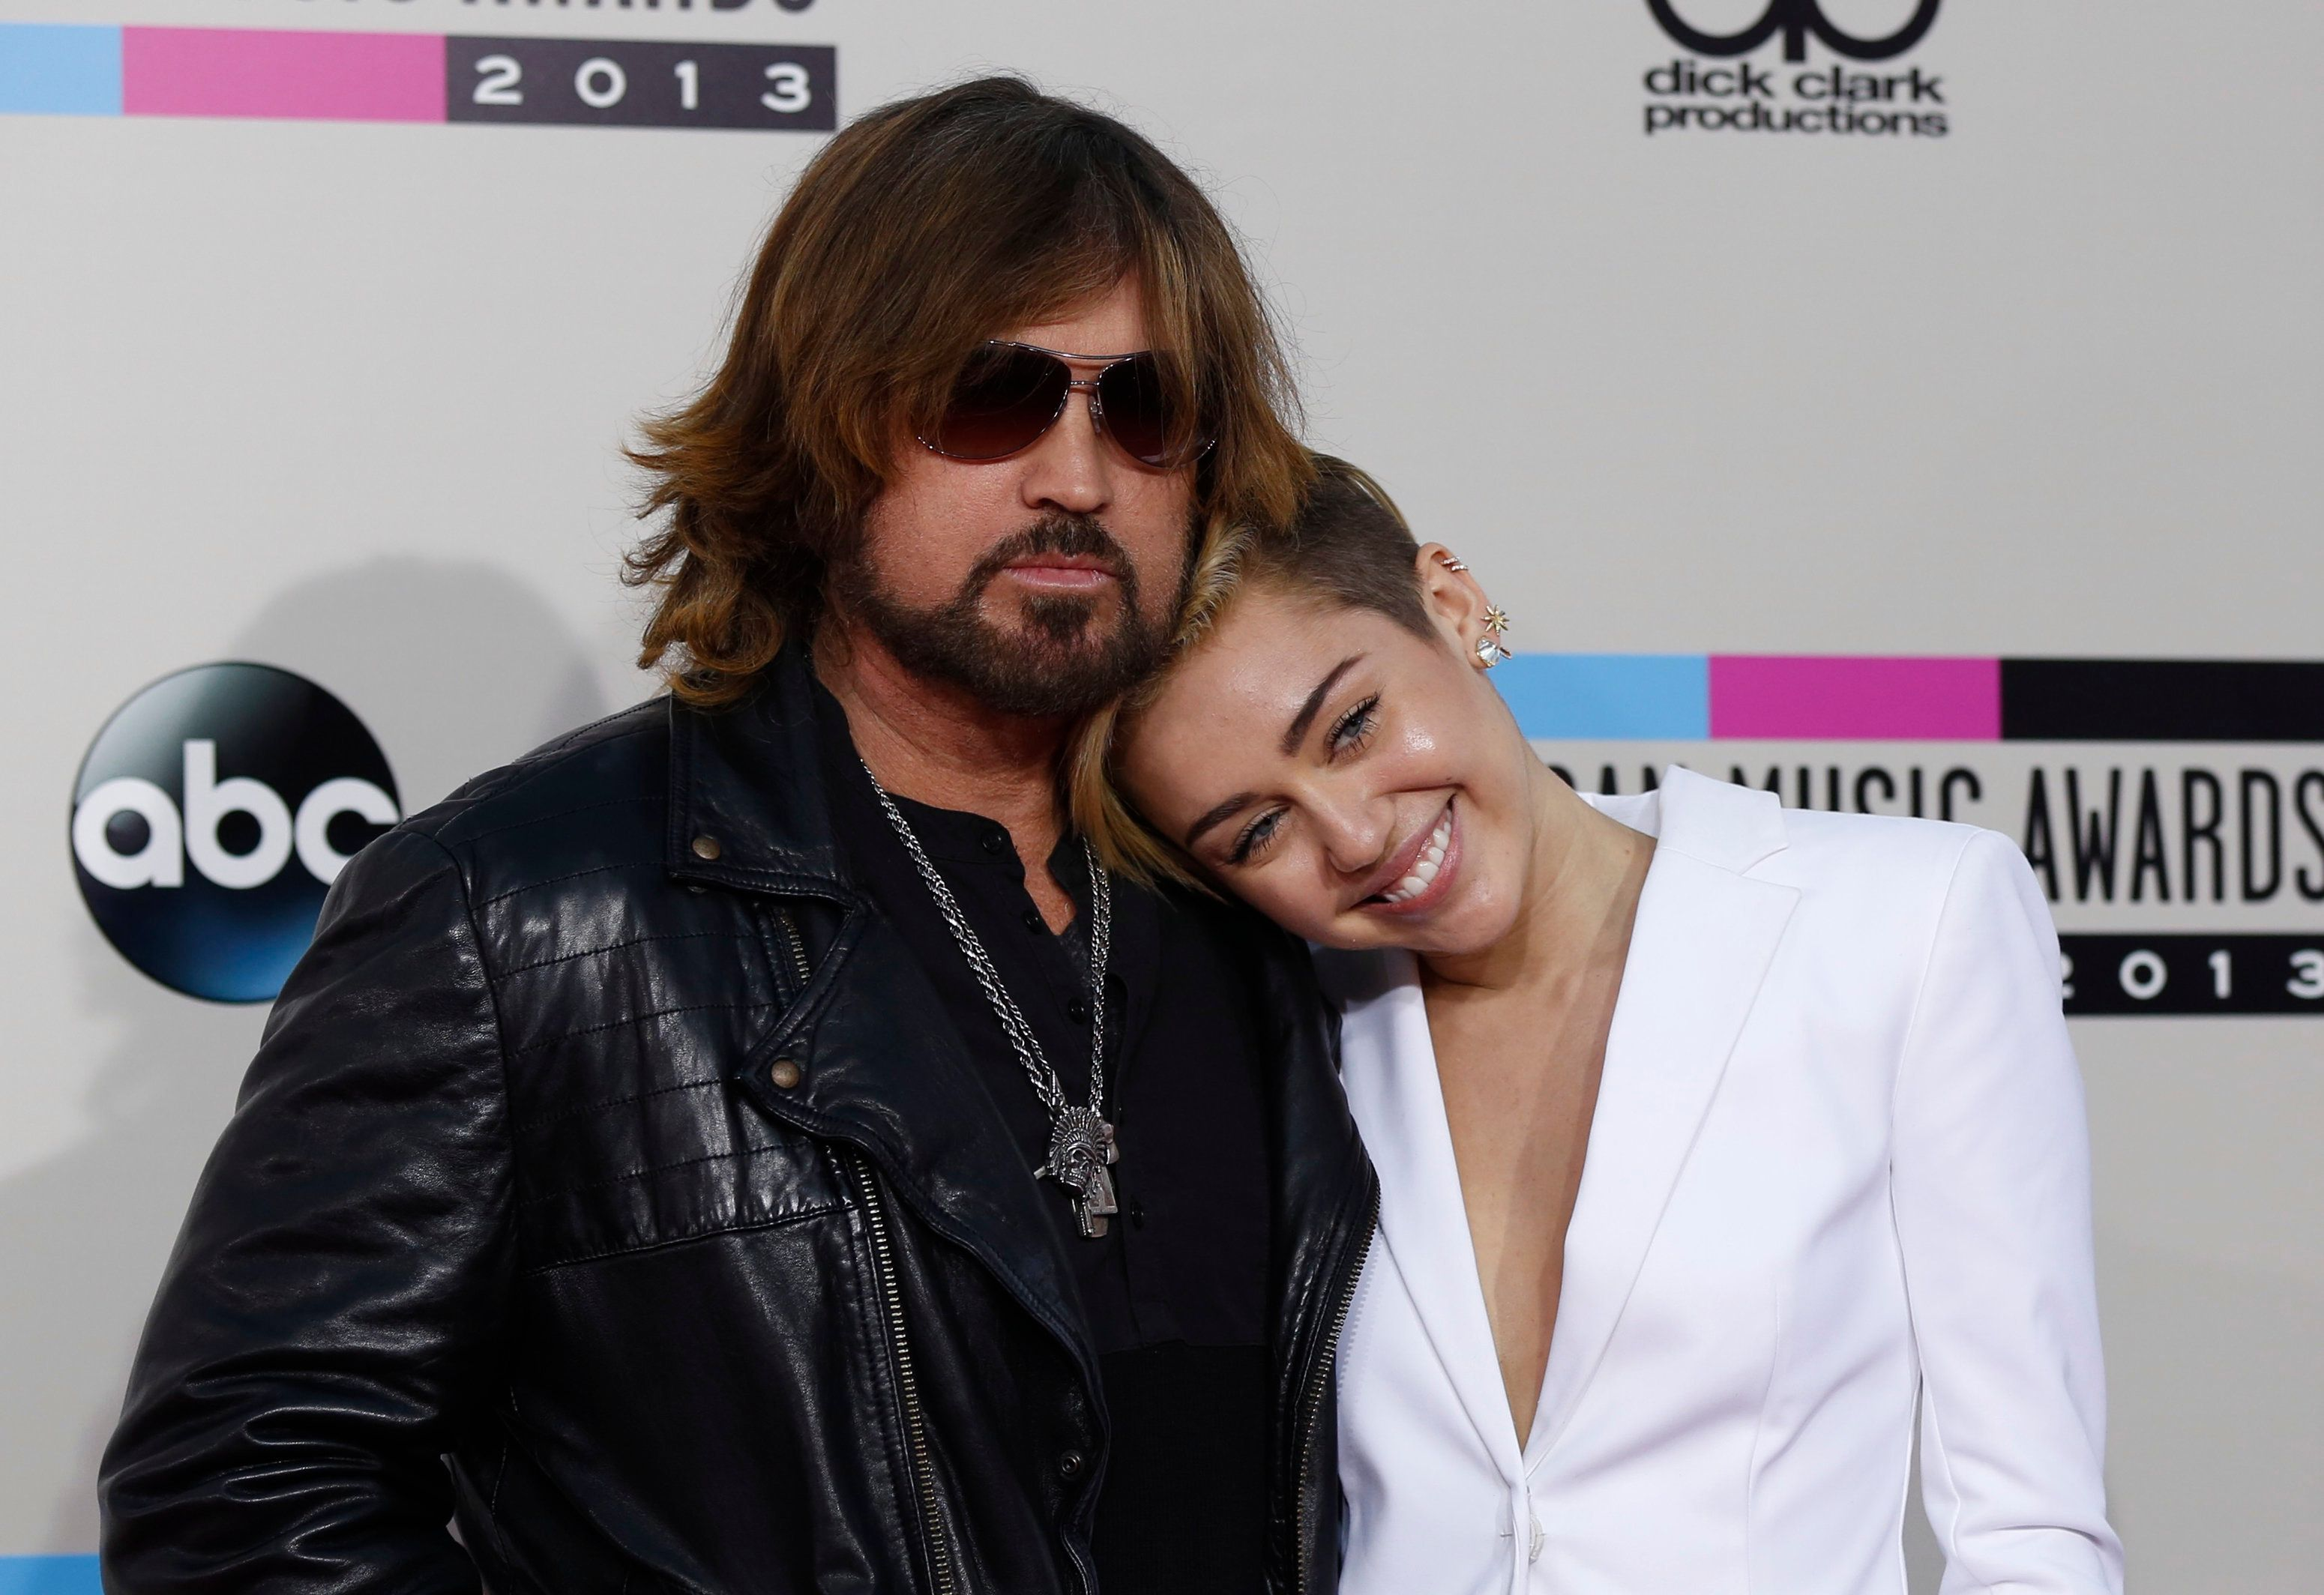 Singer Miley Cyrus and her father Billy Ray Cyrus arrive at the 41st American Music Awards in Los Angeles, California November 24, 2013.   REUTERS/Mario Anzuoni (UNITED STATES  - Tags: ENTERTAINMENT)  (AMA-ARRIVALS)